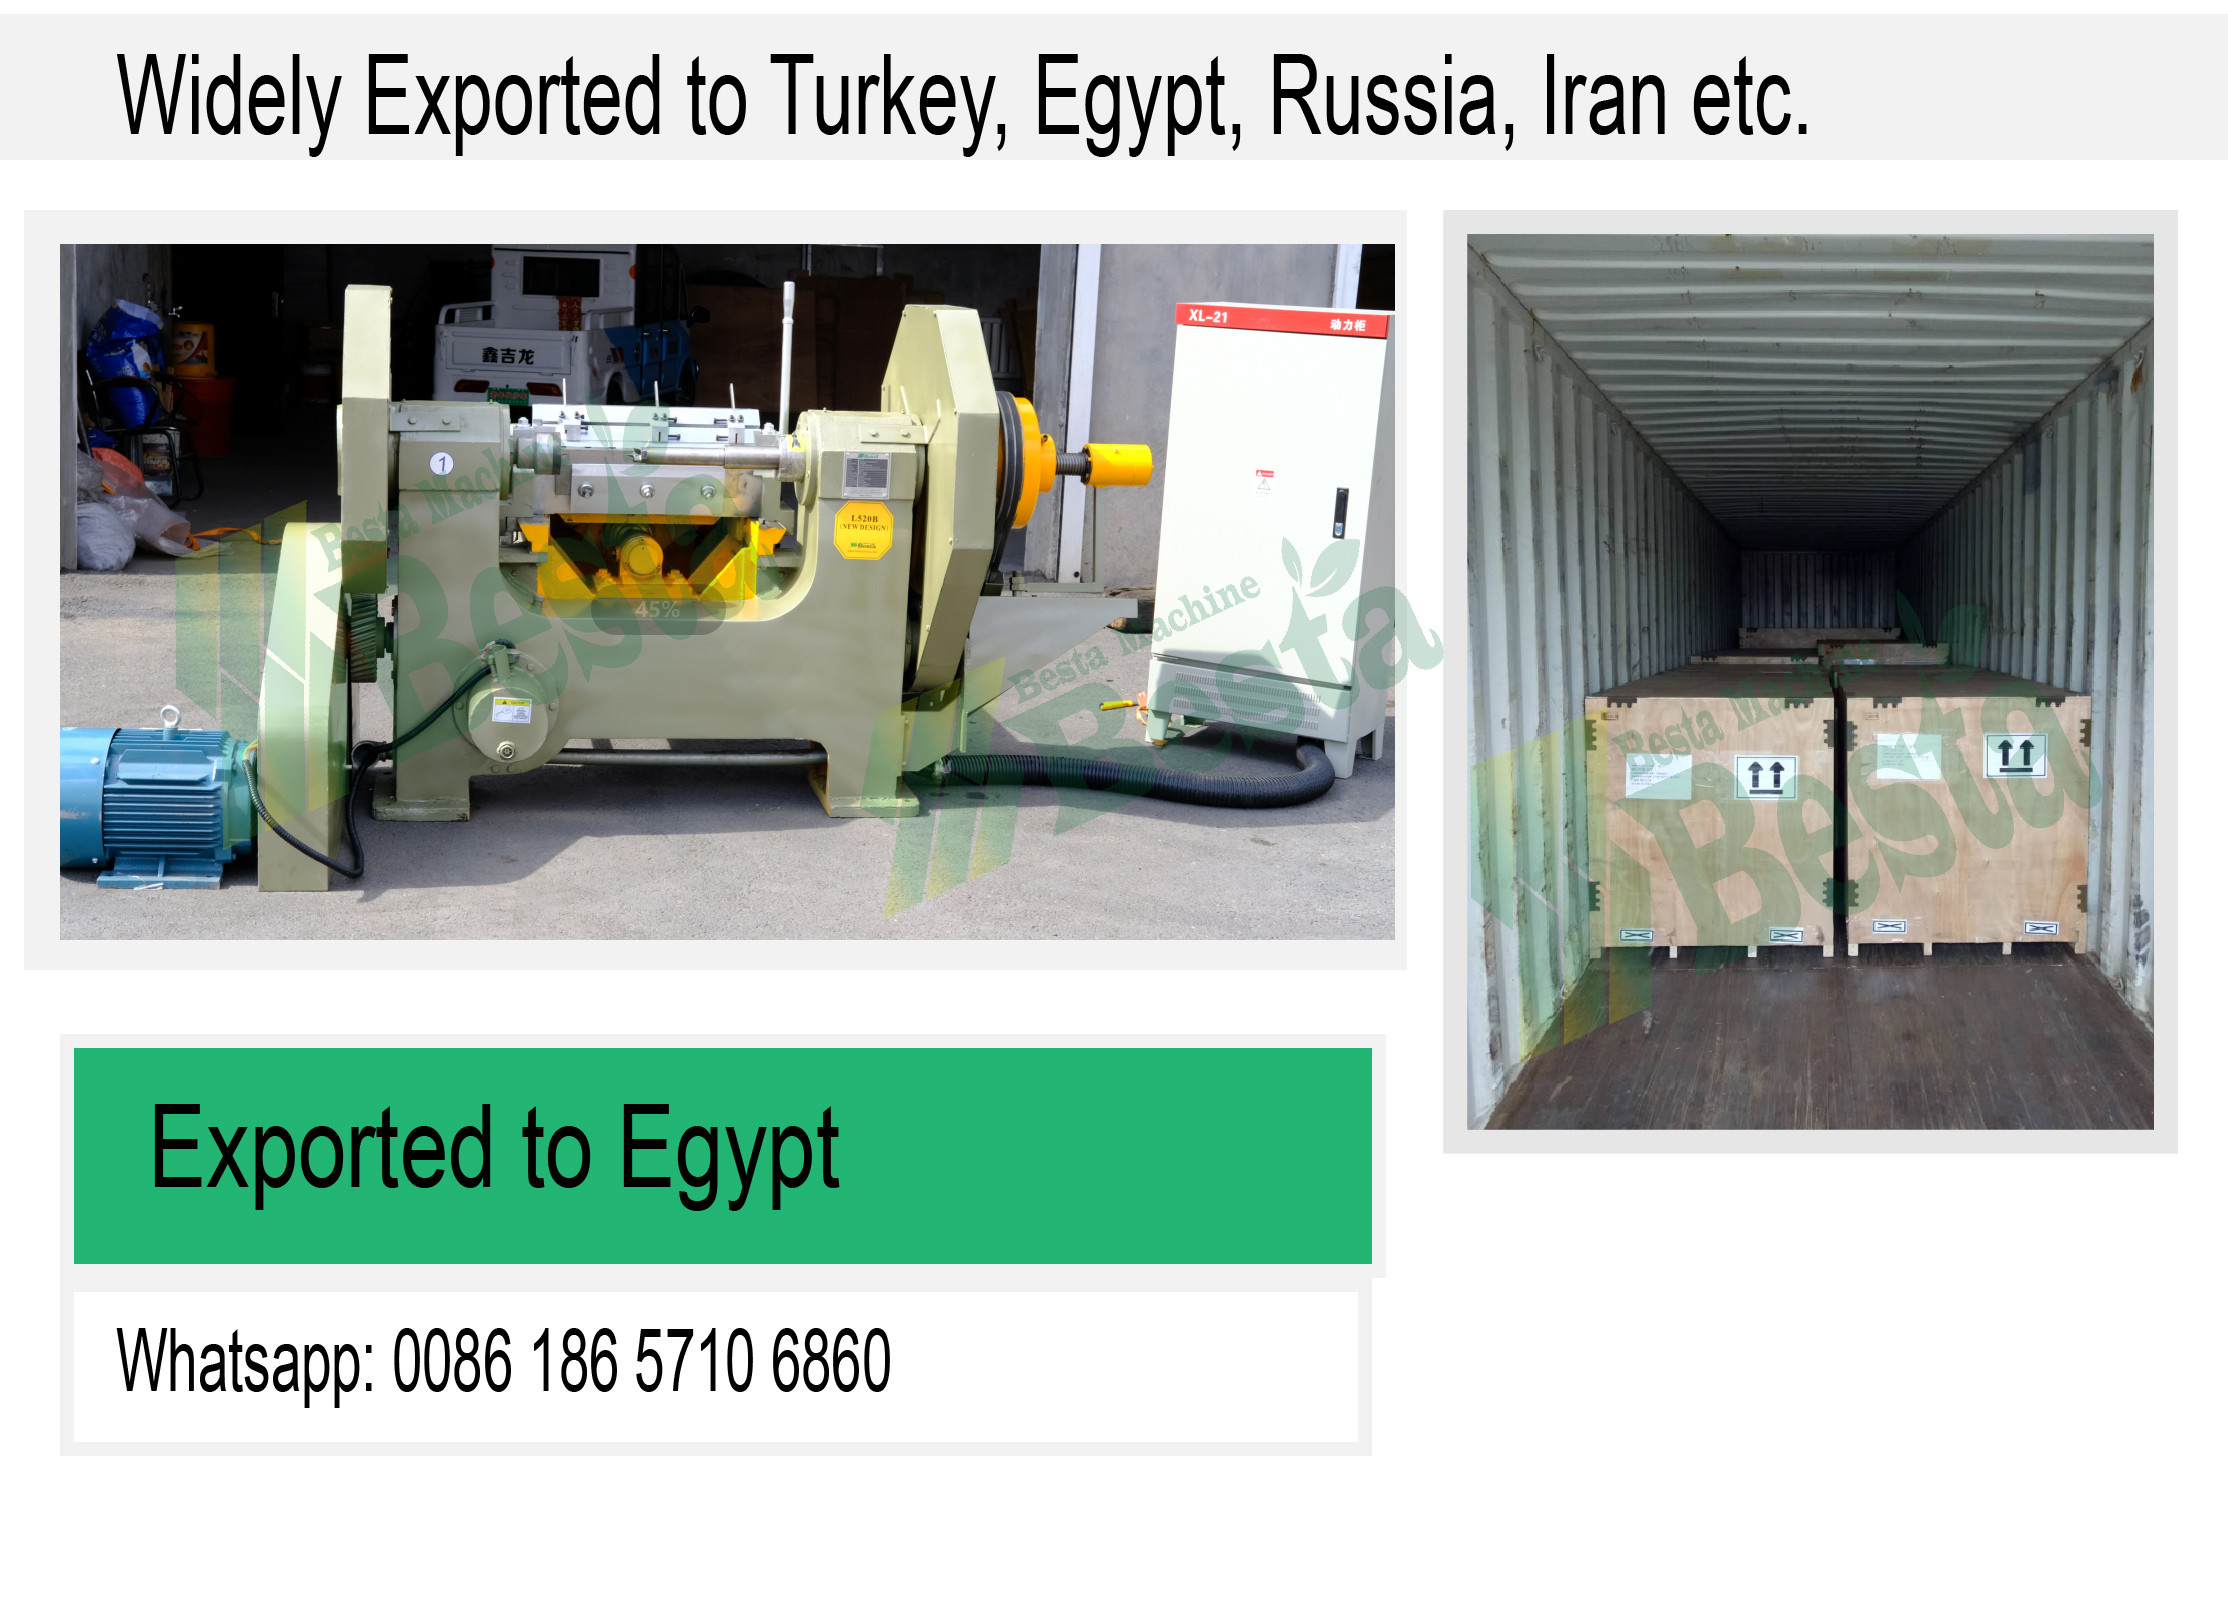 OUR MACHINE WIDELY EXPORTED